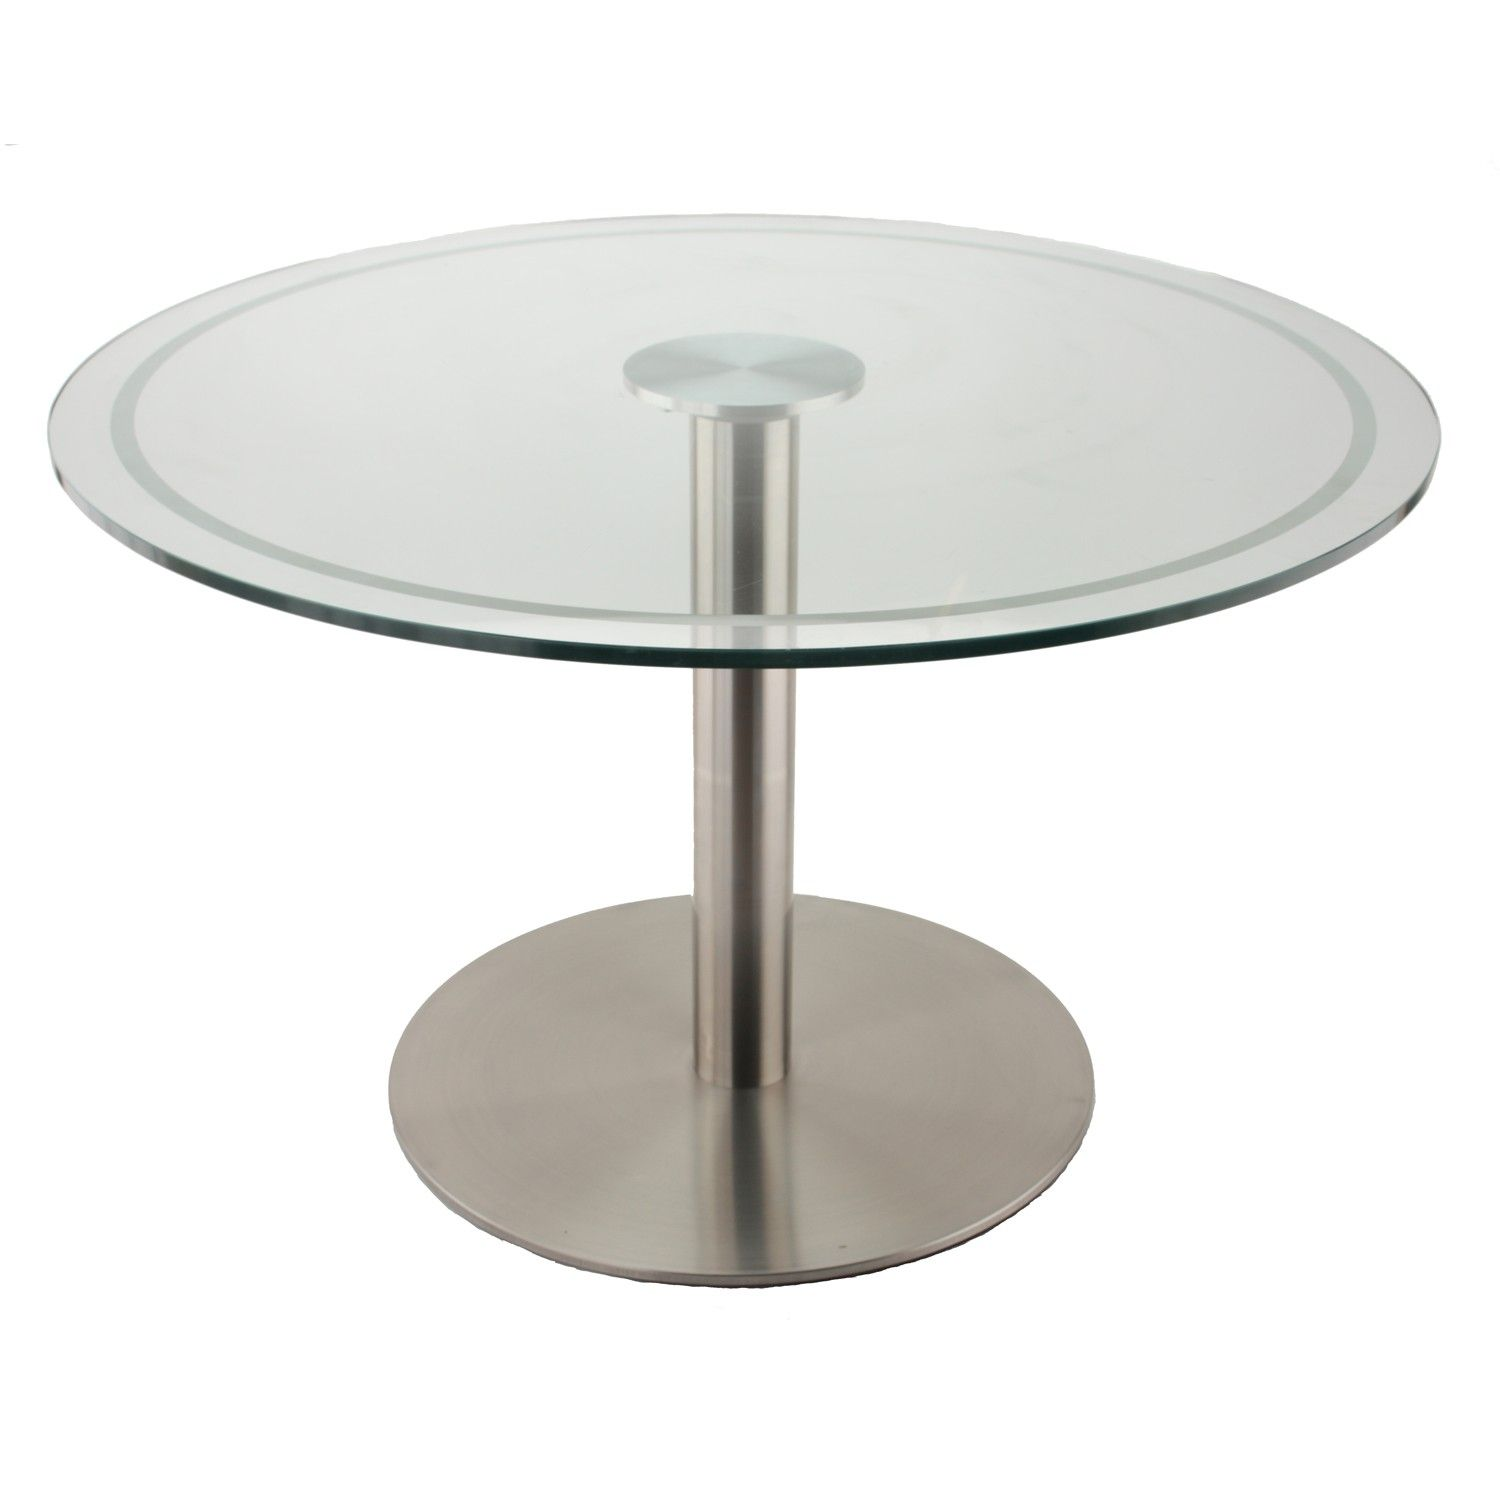 Dining room table bases for glass tops - The Rfl750 Stainless Steel Table Base With Glass Table Top Using Our Glass Top Adapter